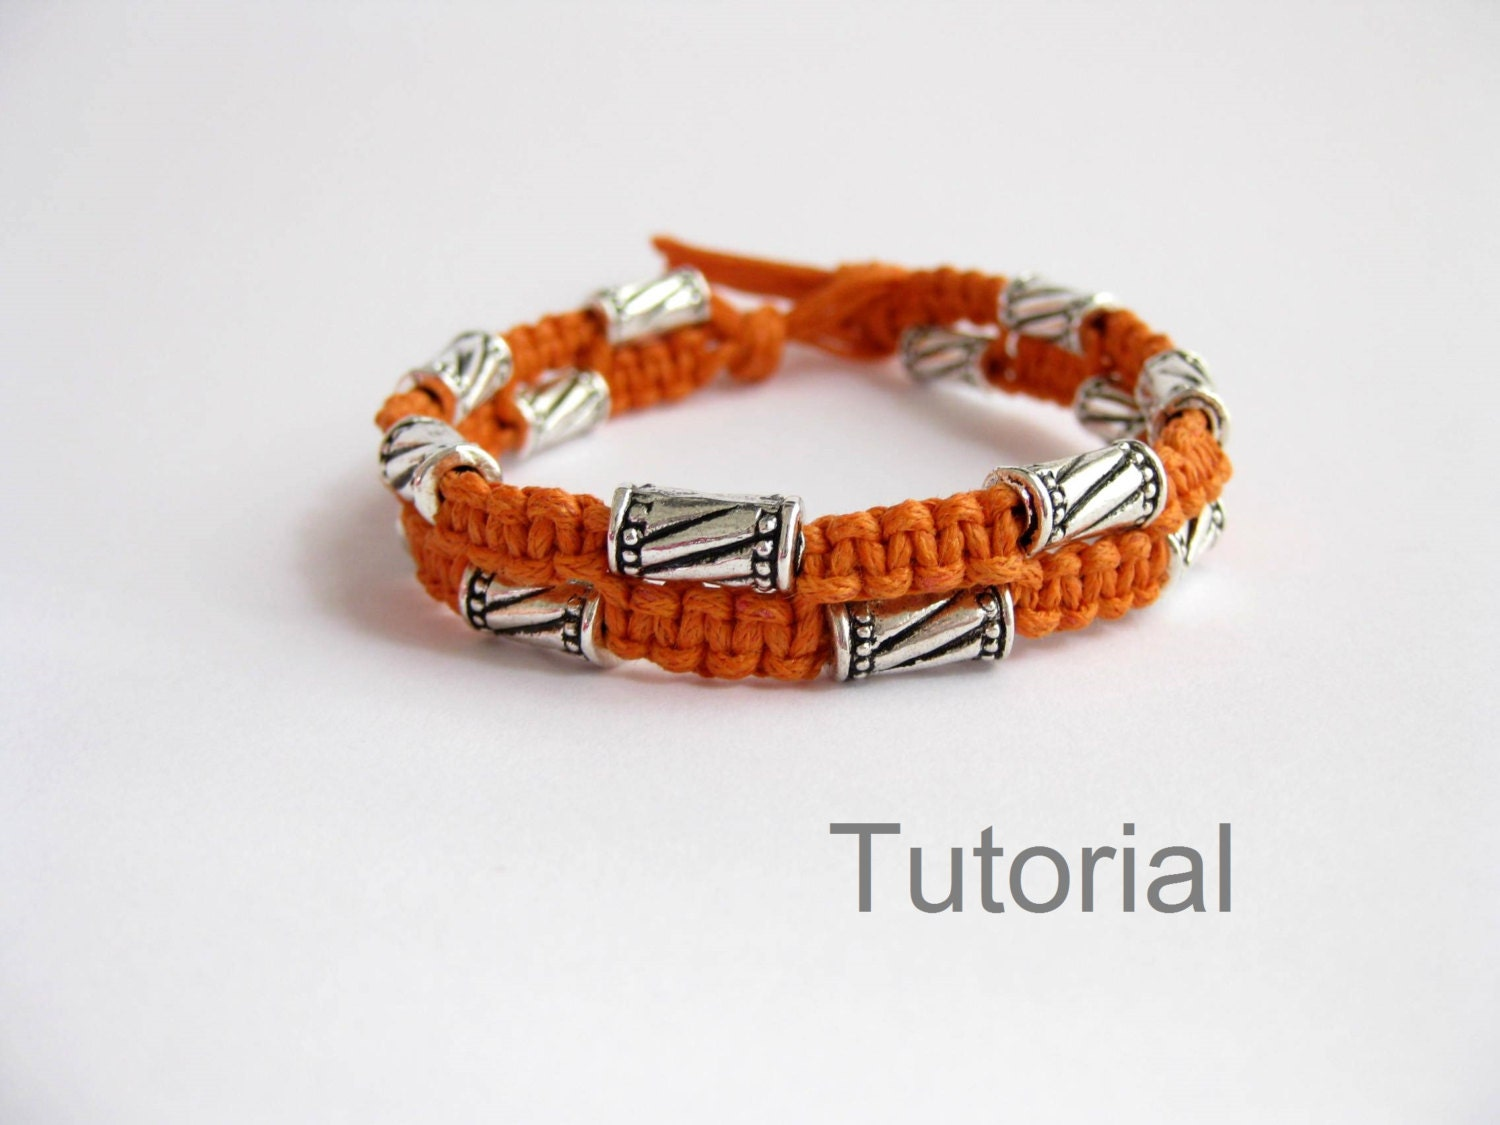 Bonus pattern macrame bracelet tutorial with bonus knotted